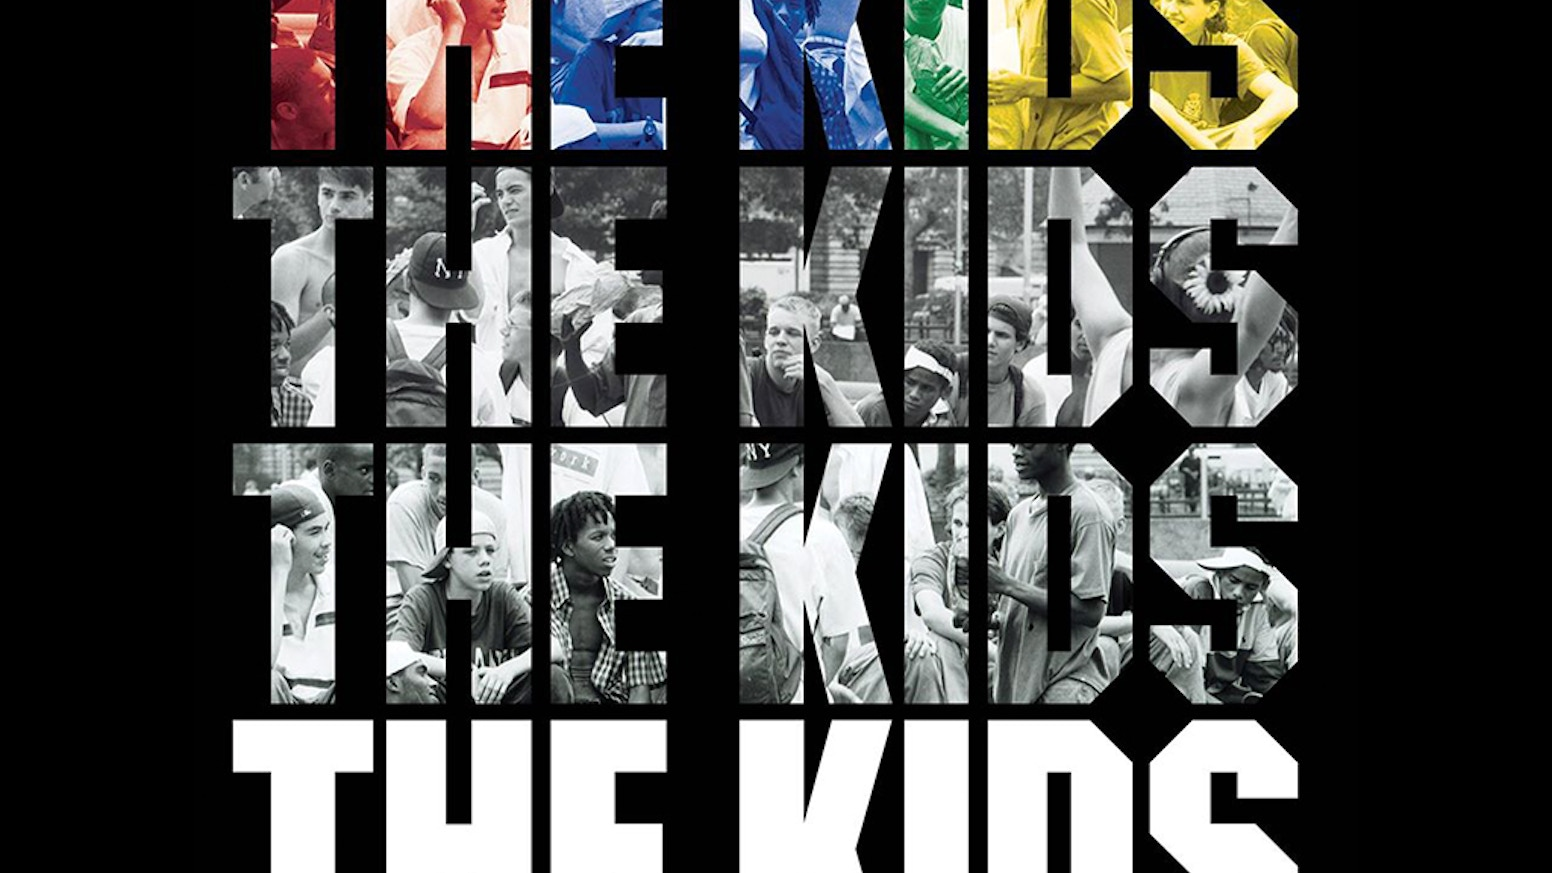 THE KIDS is the unprecedented, all-access documentary about the inside story of the